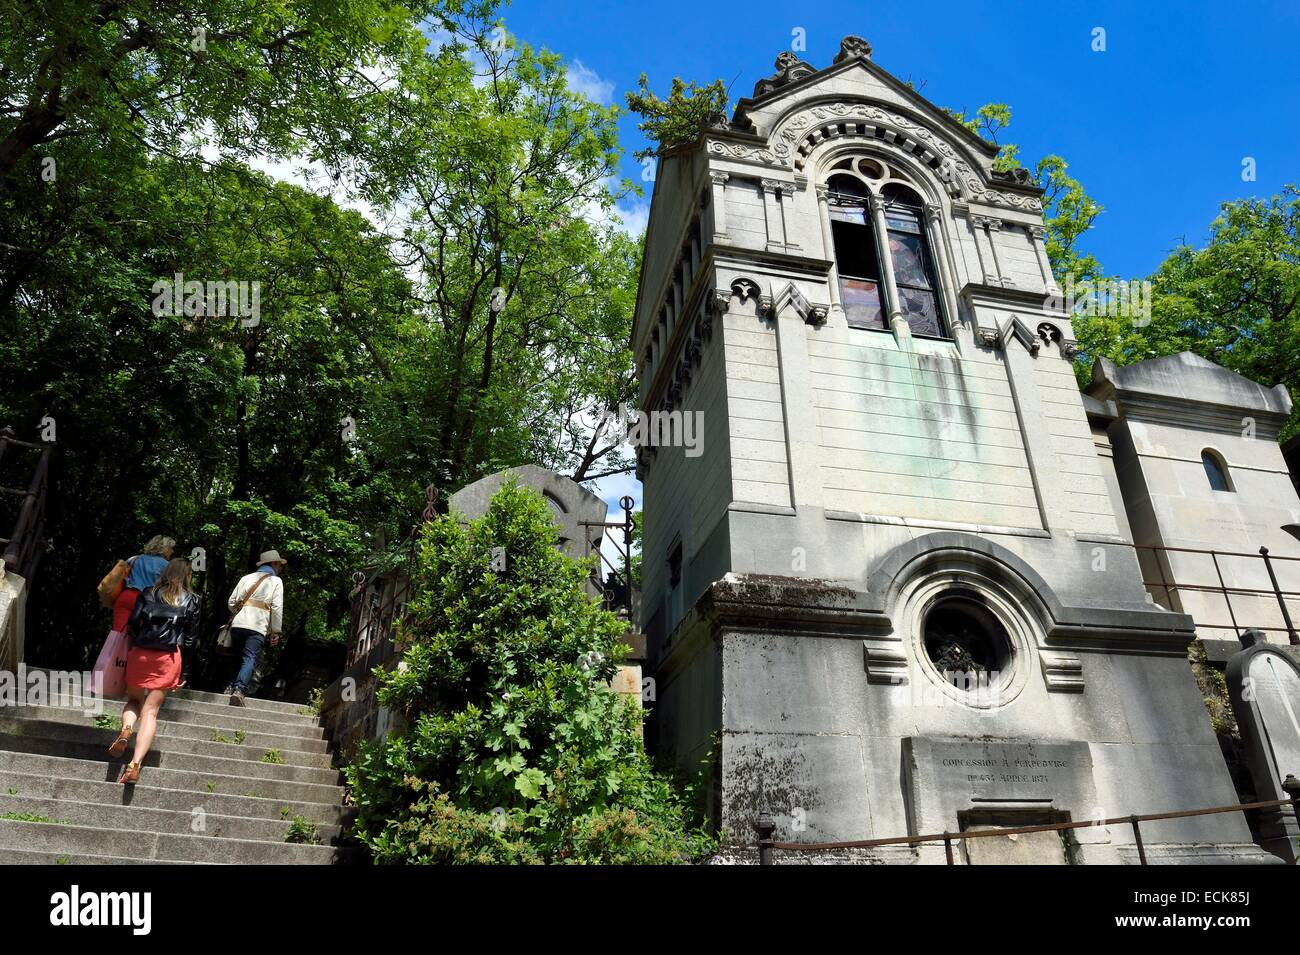 France, Paris, the Pere-Lachaise cemetery - Stock Image